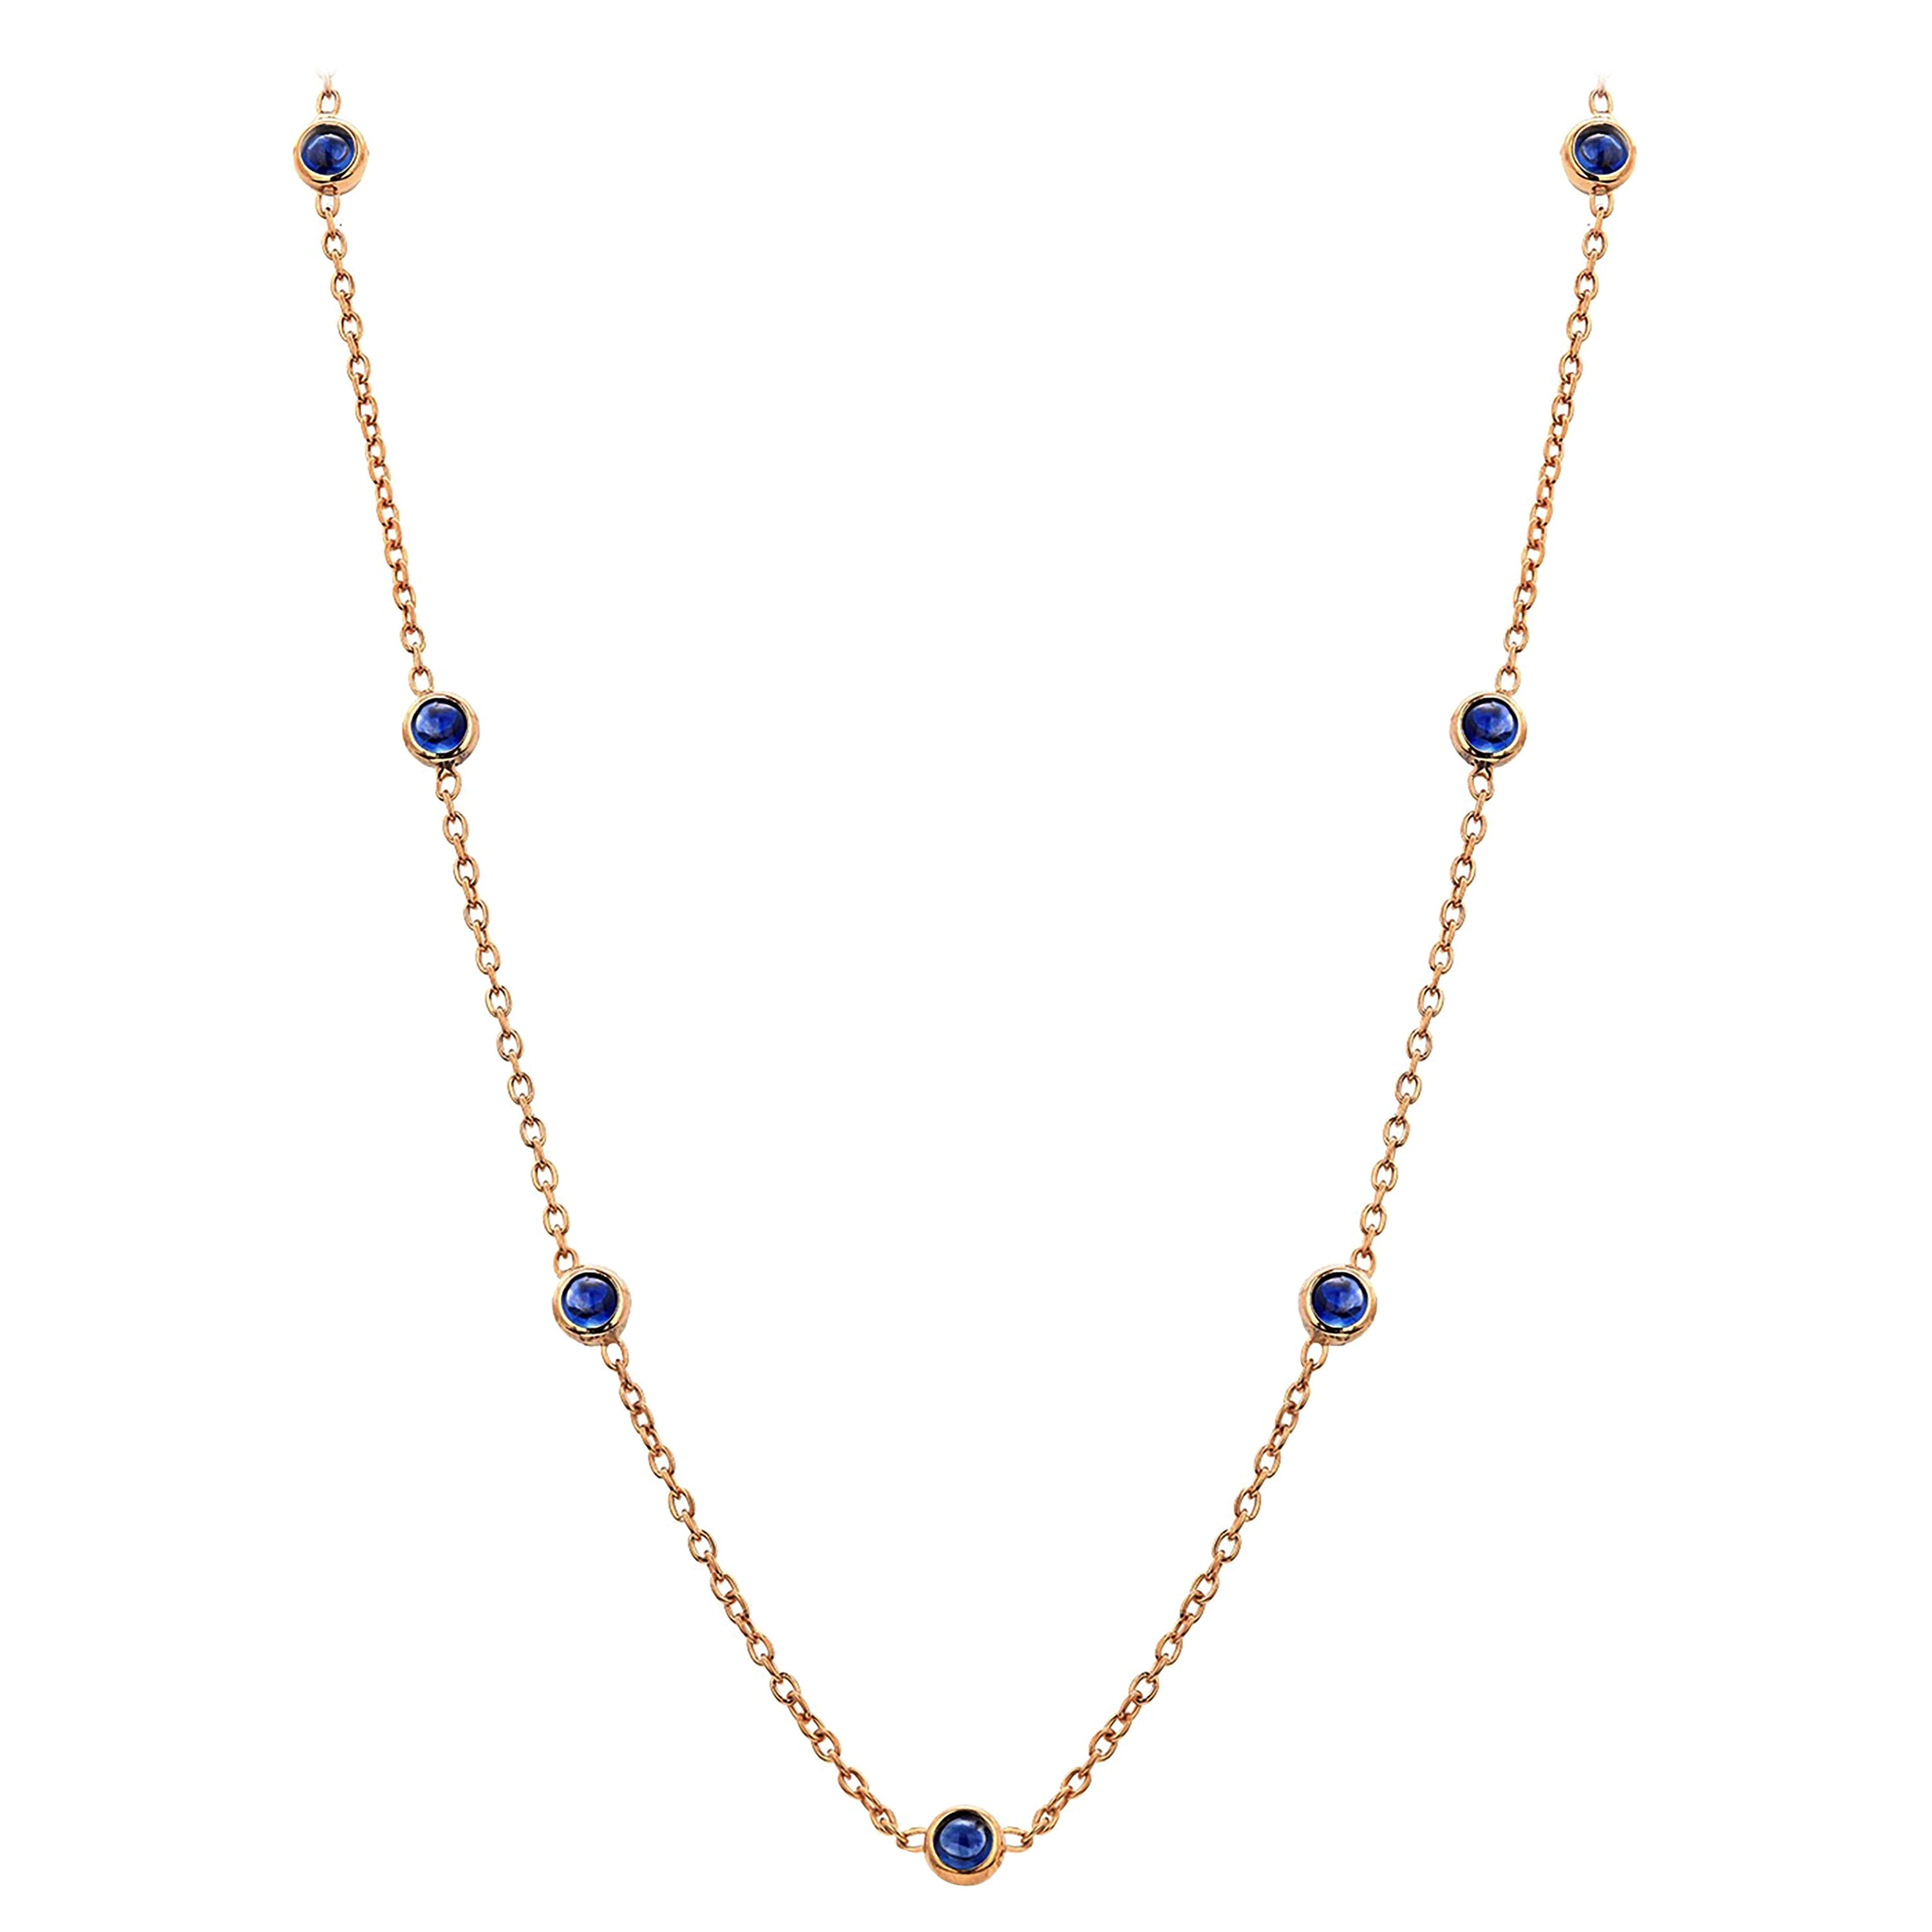 Seven Natural Cabochon Sapphires Bezel Necklace Silver Yellow Gold-Plated